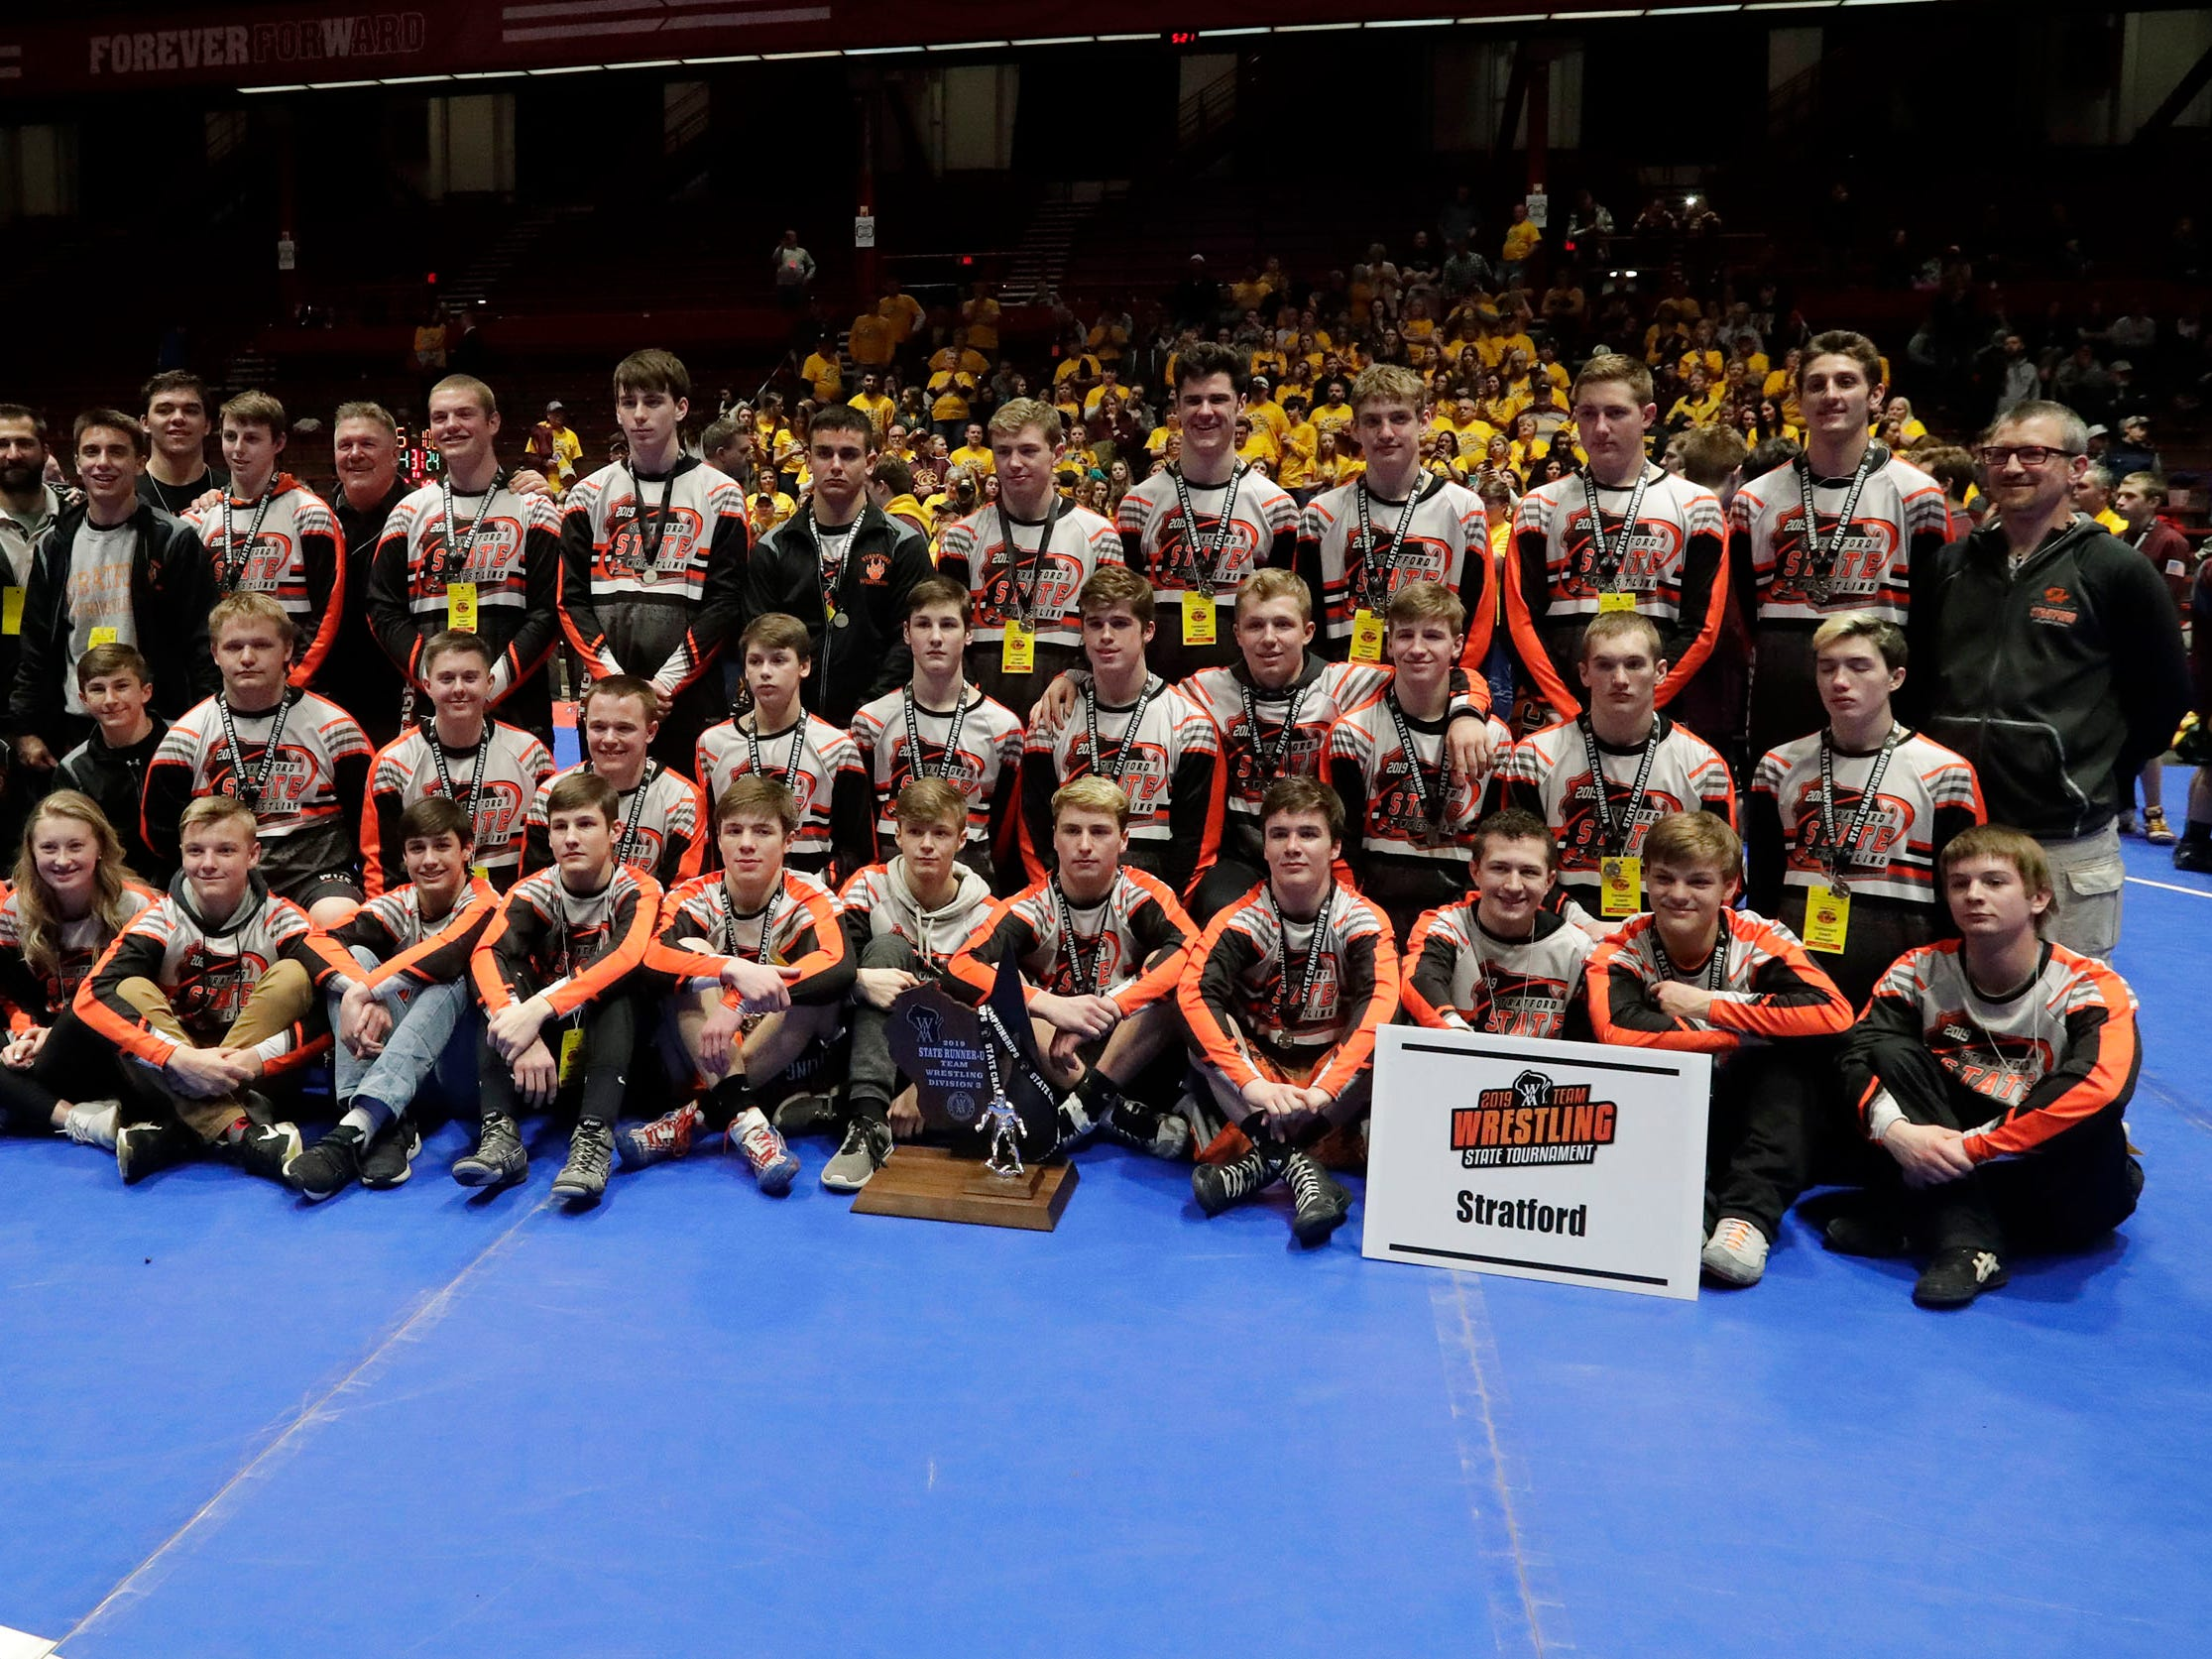 Stratford's team poses for a photo at the conclusion of their season at state, Saturday, March 2, 2019, in Madison, Wis.